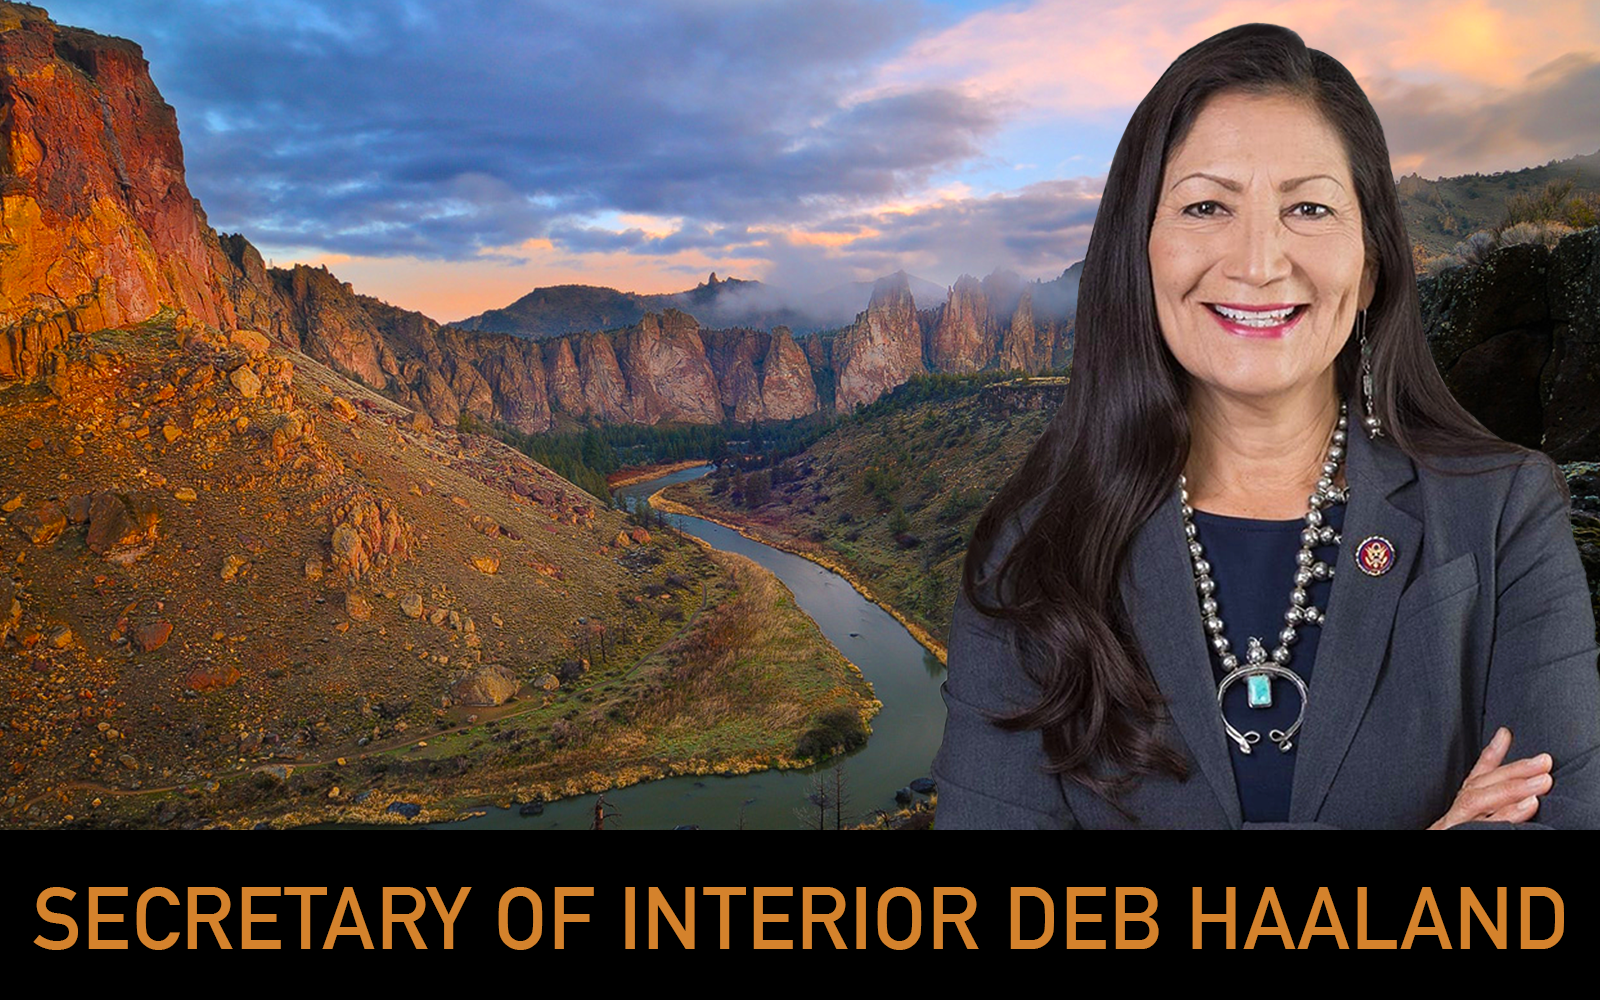 Celebrating the Historic Confirmation of Secretary Haaland